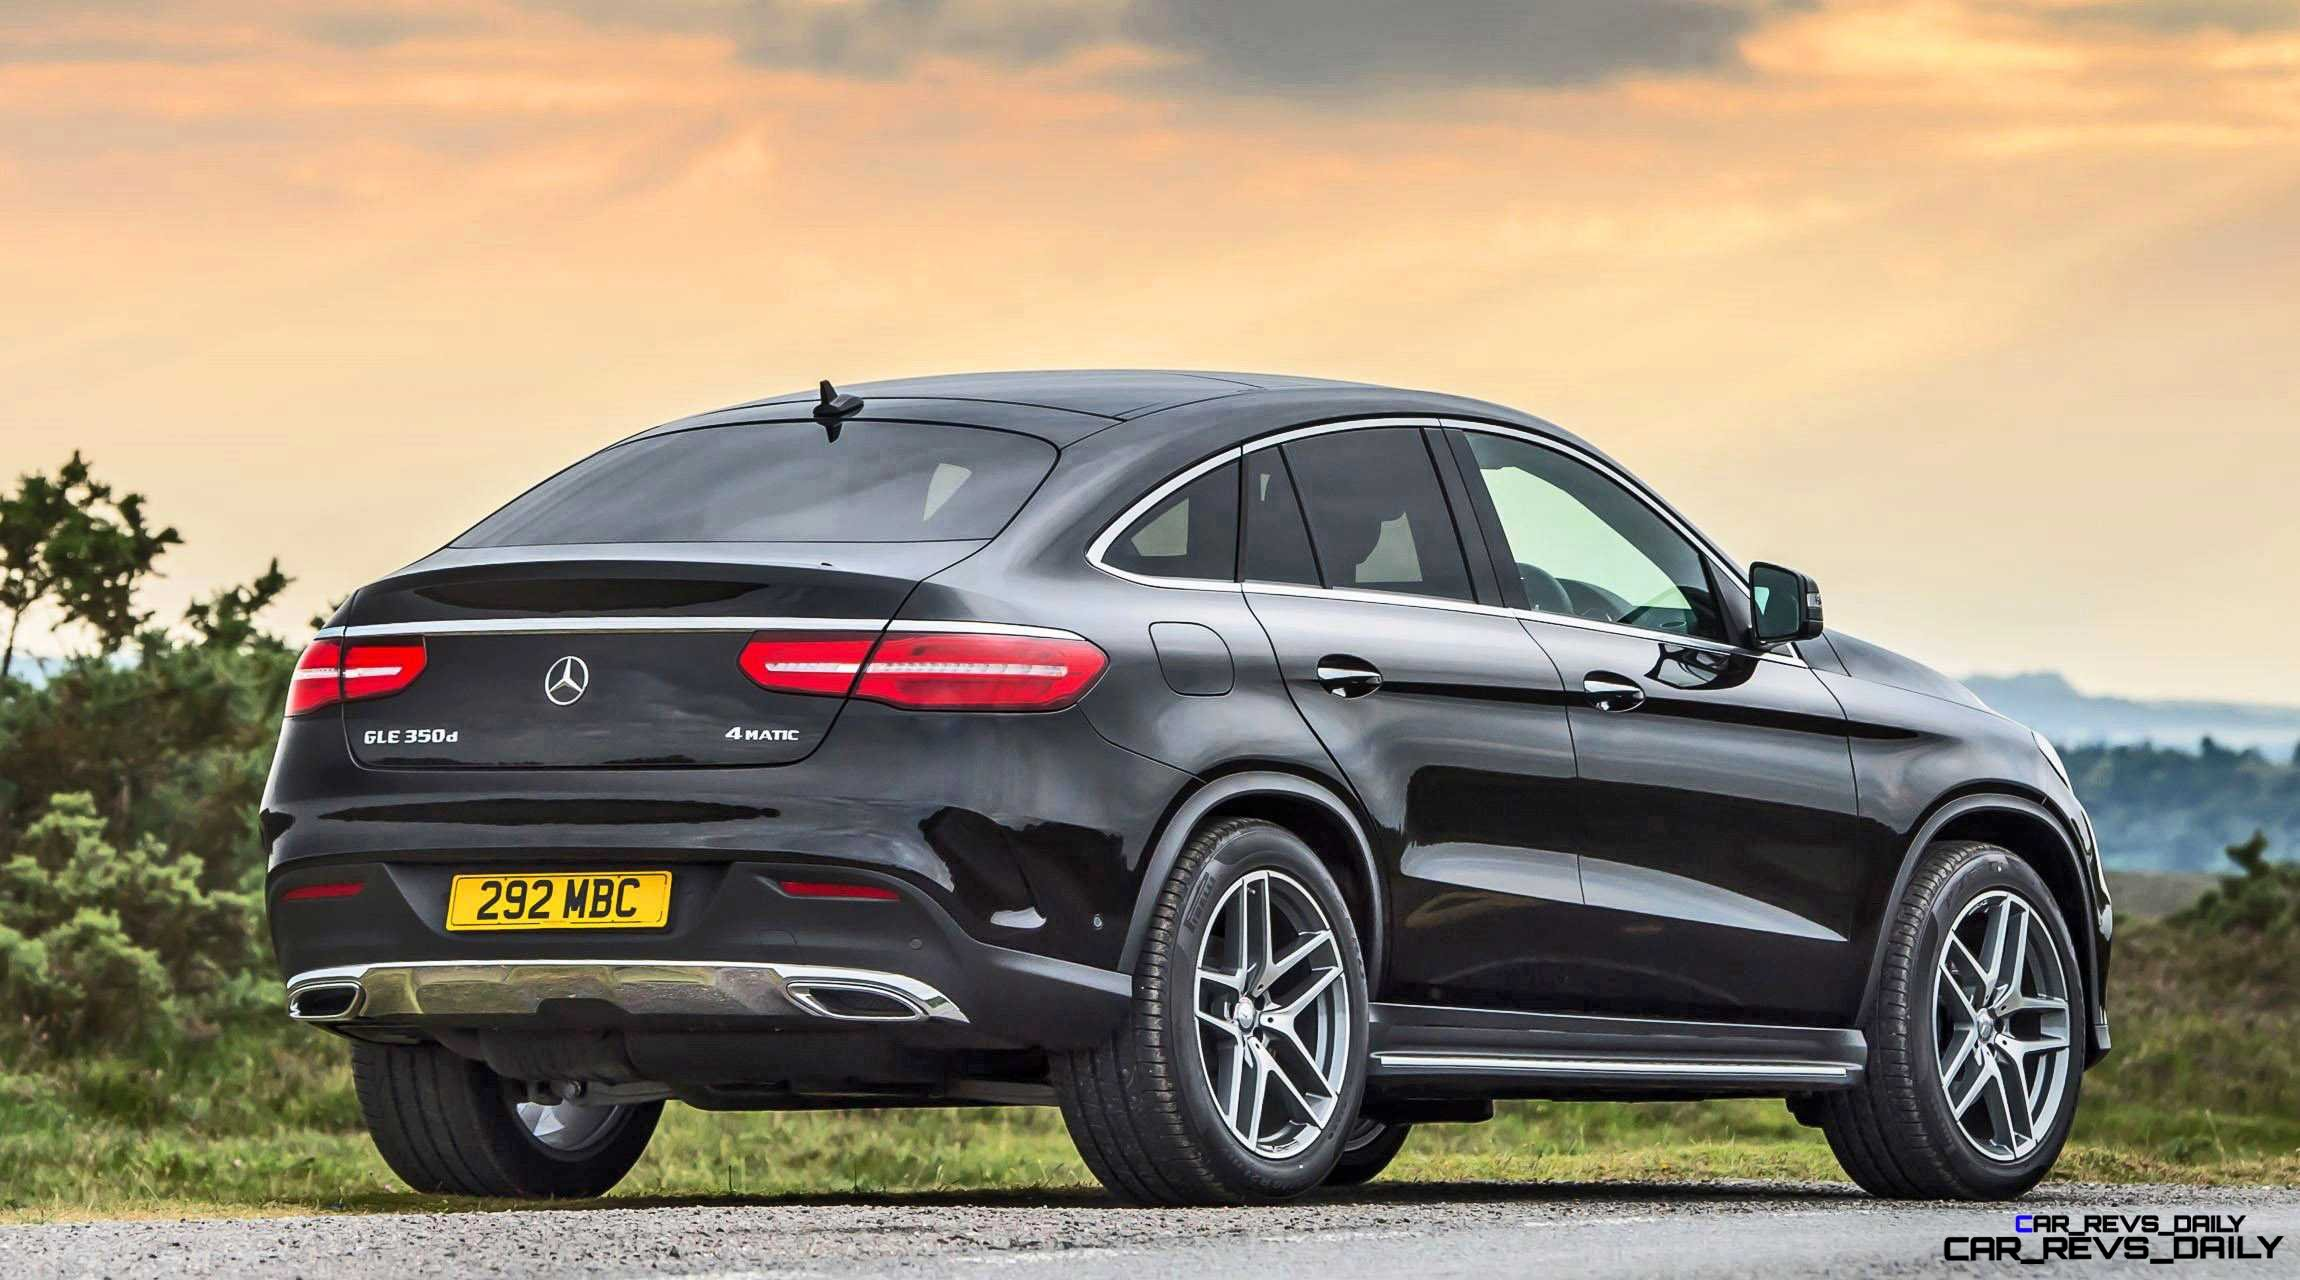 http://www.car-revs-daily.com/wp-content/uploads/2015/08/2016-Mercedes-Benz-GLE-Class-Coupe-141.jpg